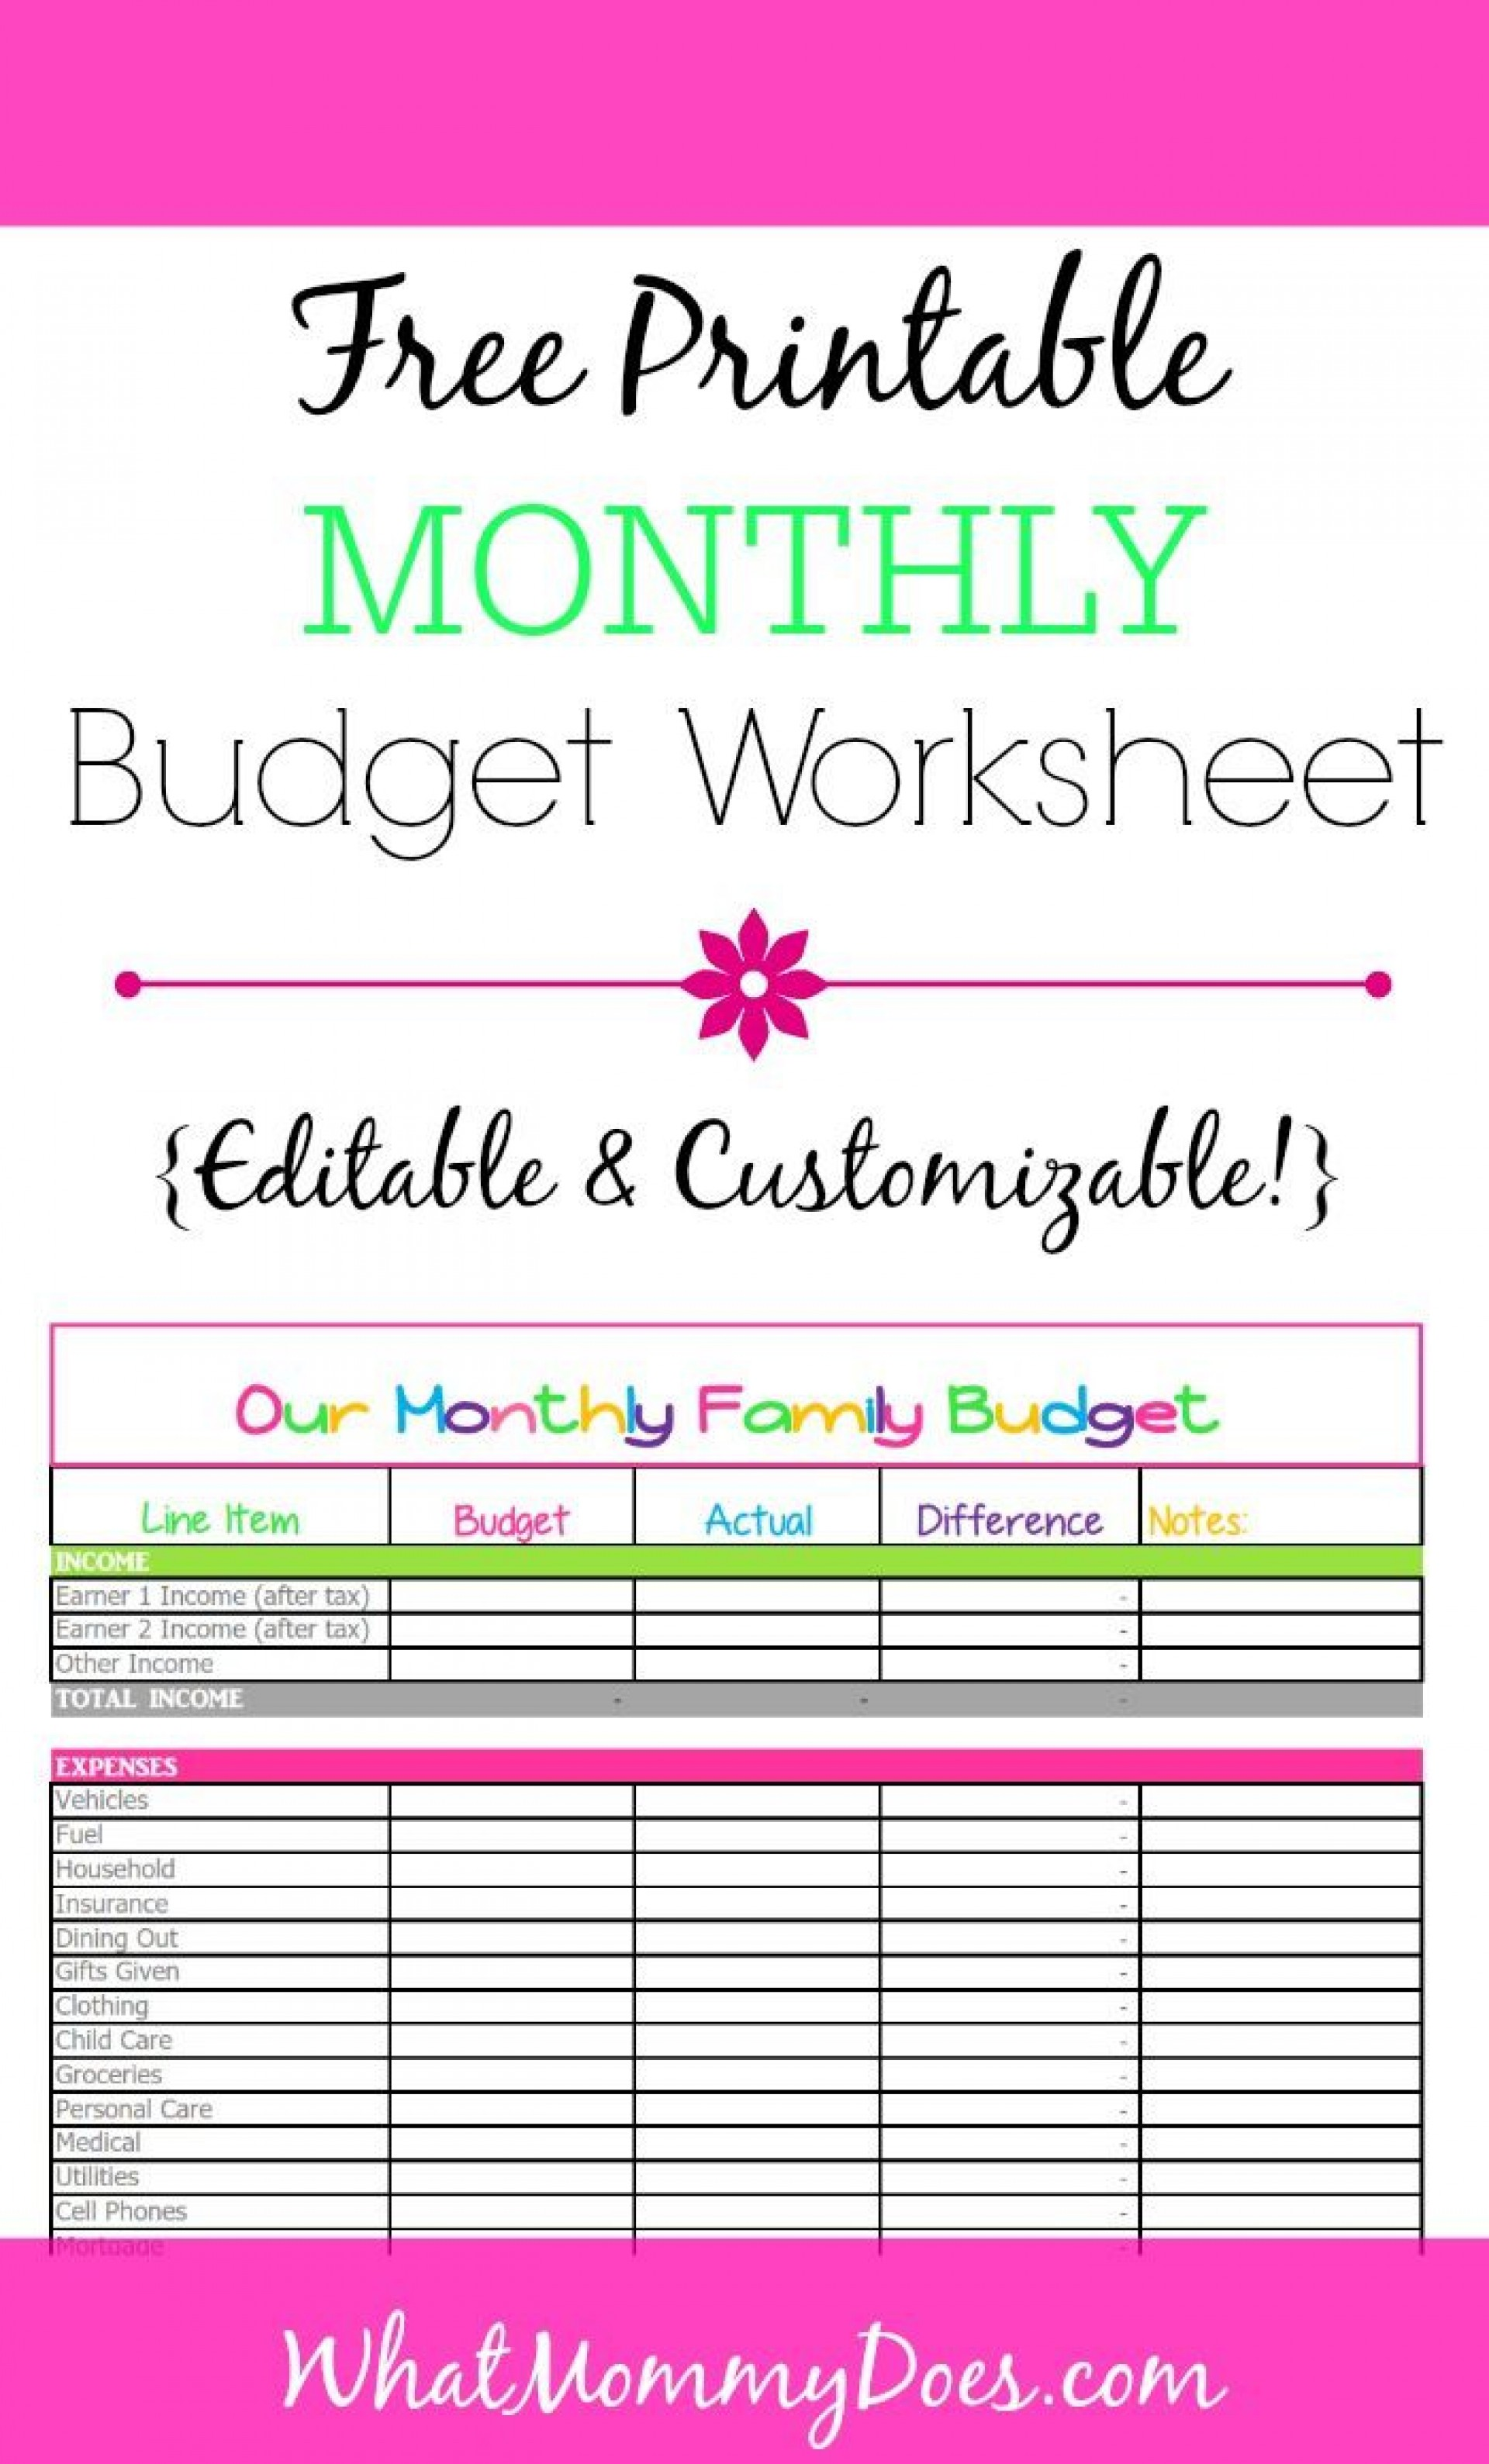 006 Stupendou Simple Monthly Budget Template Free Printable Photo 1920